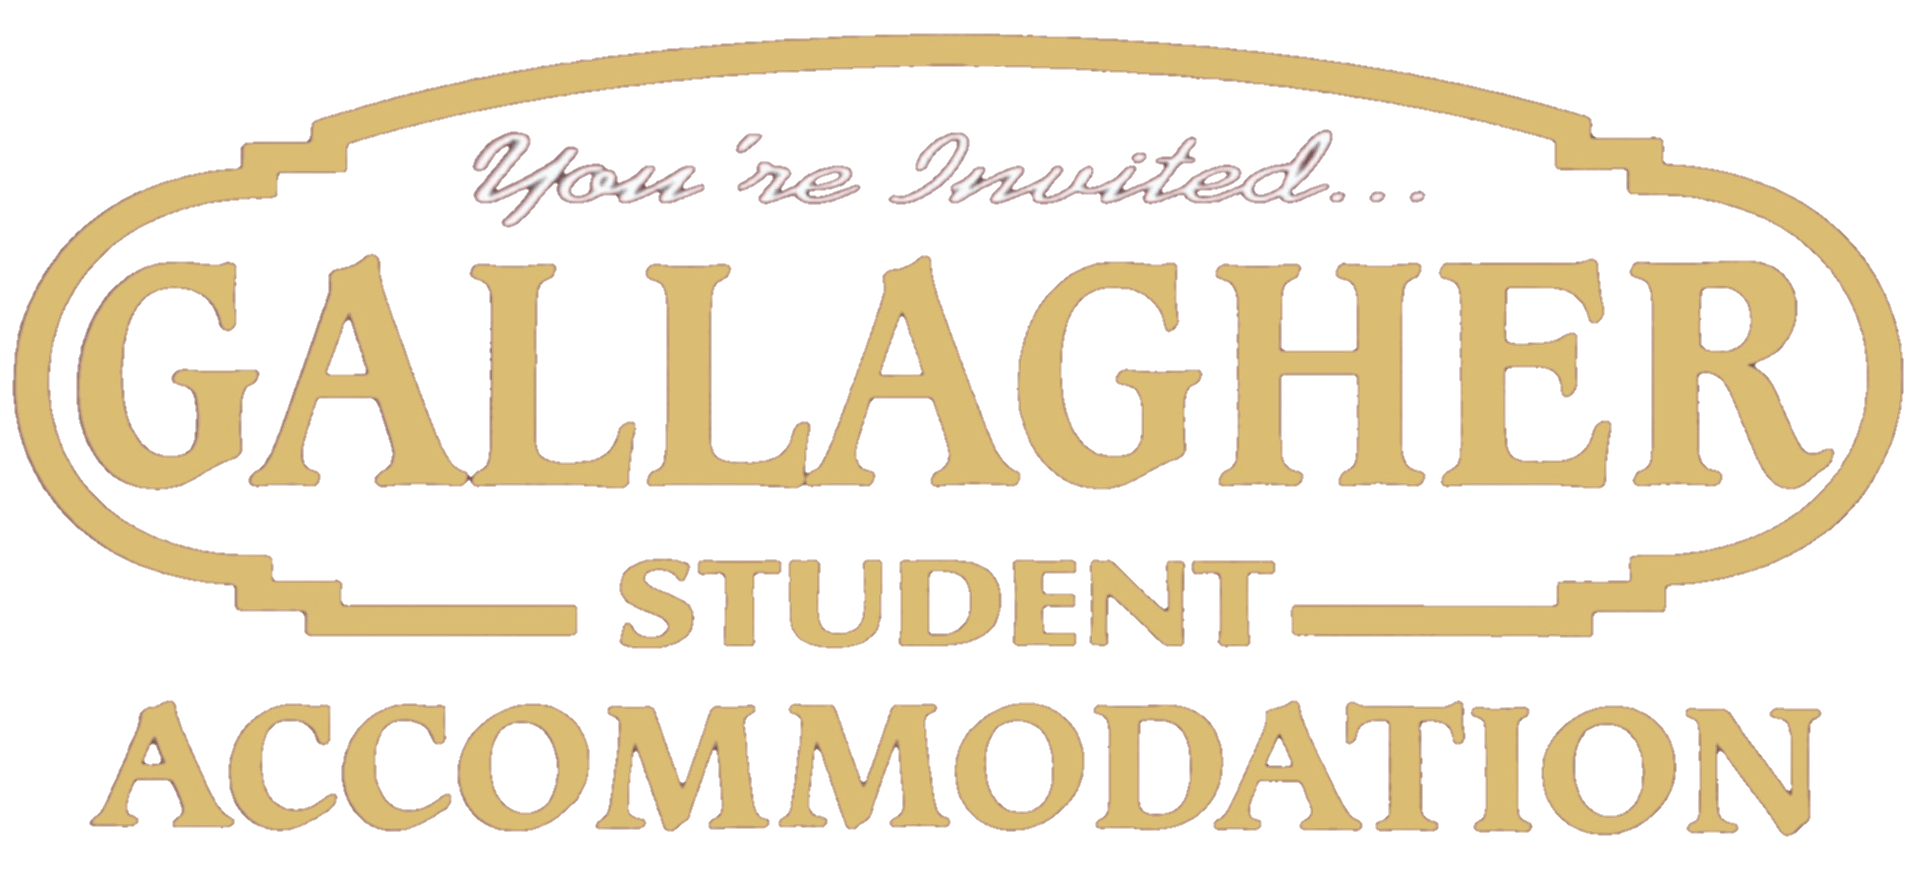 Gallagher Student Accommodation Logo